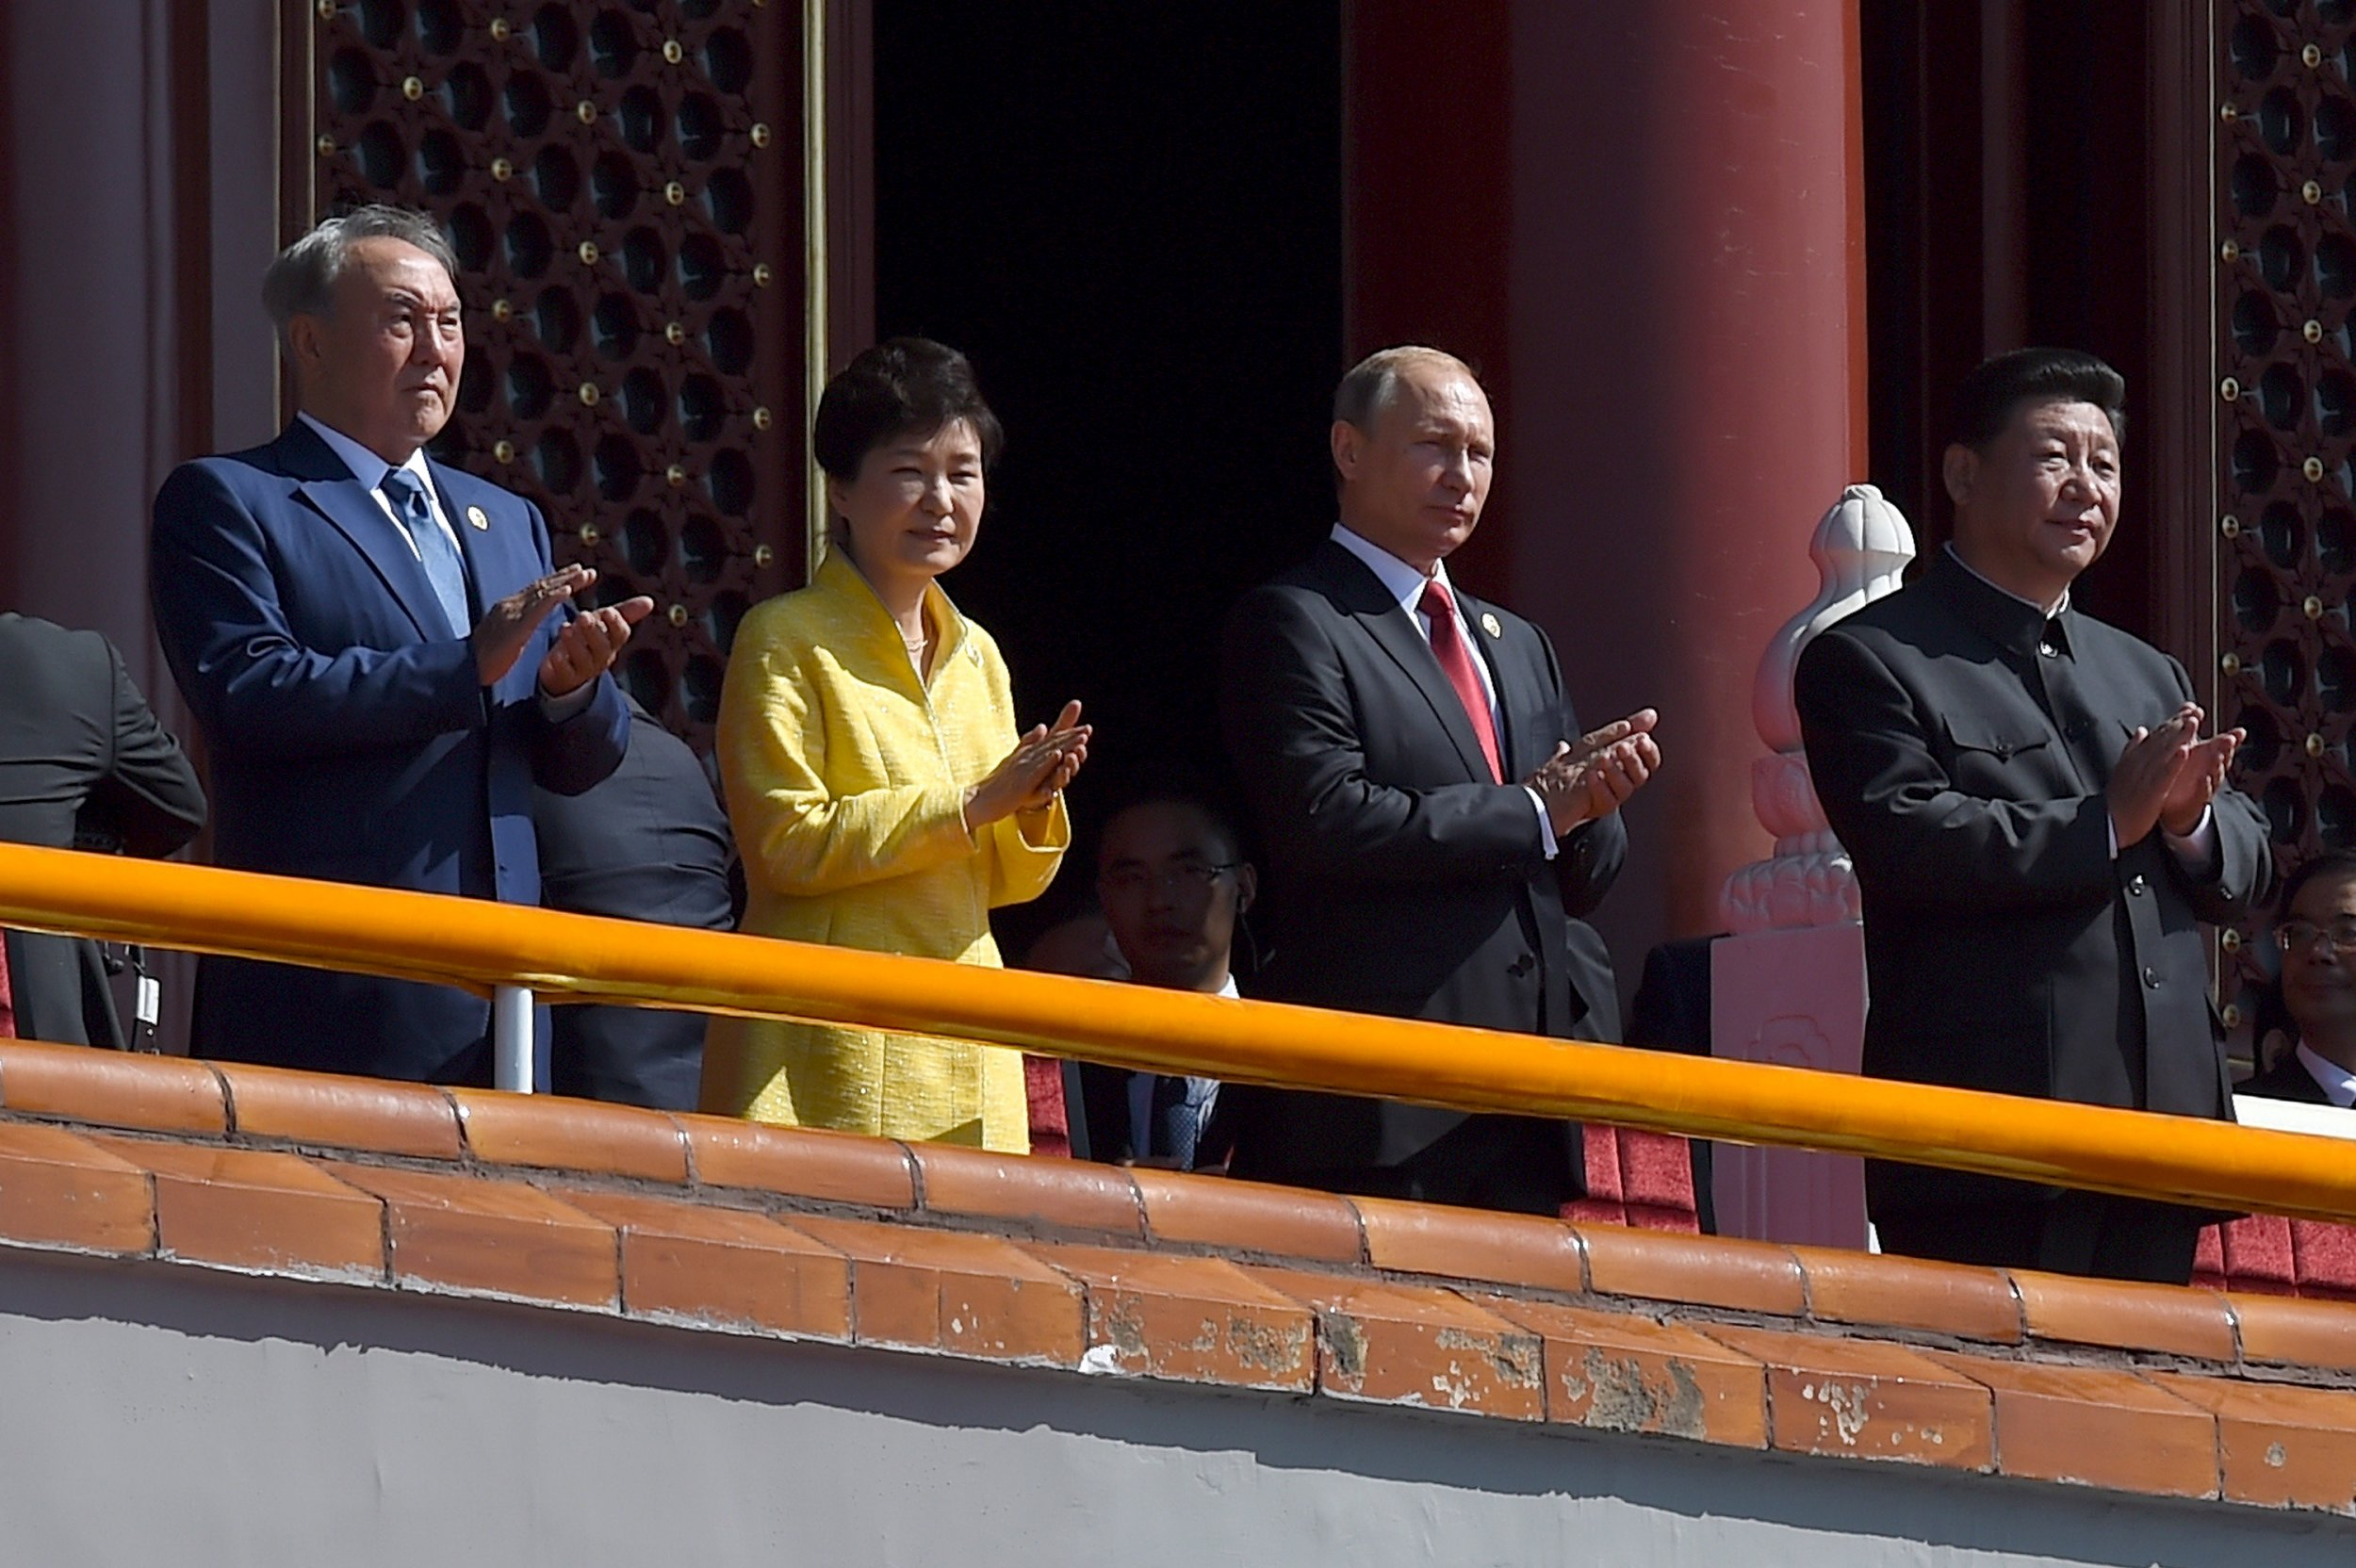 Putin and Xi in Beijing